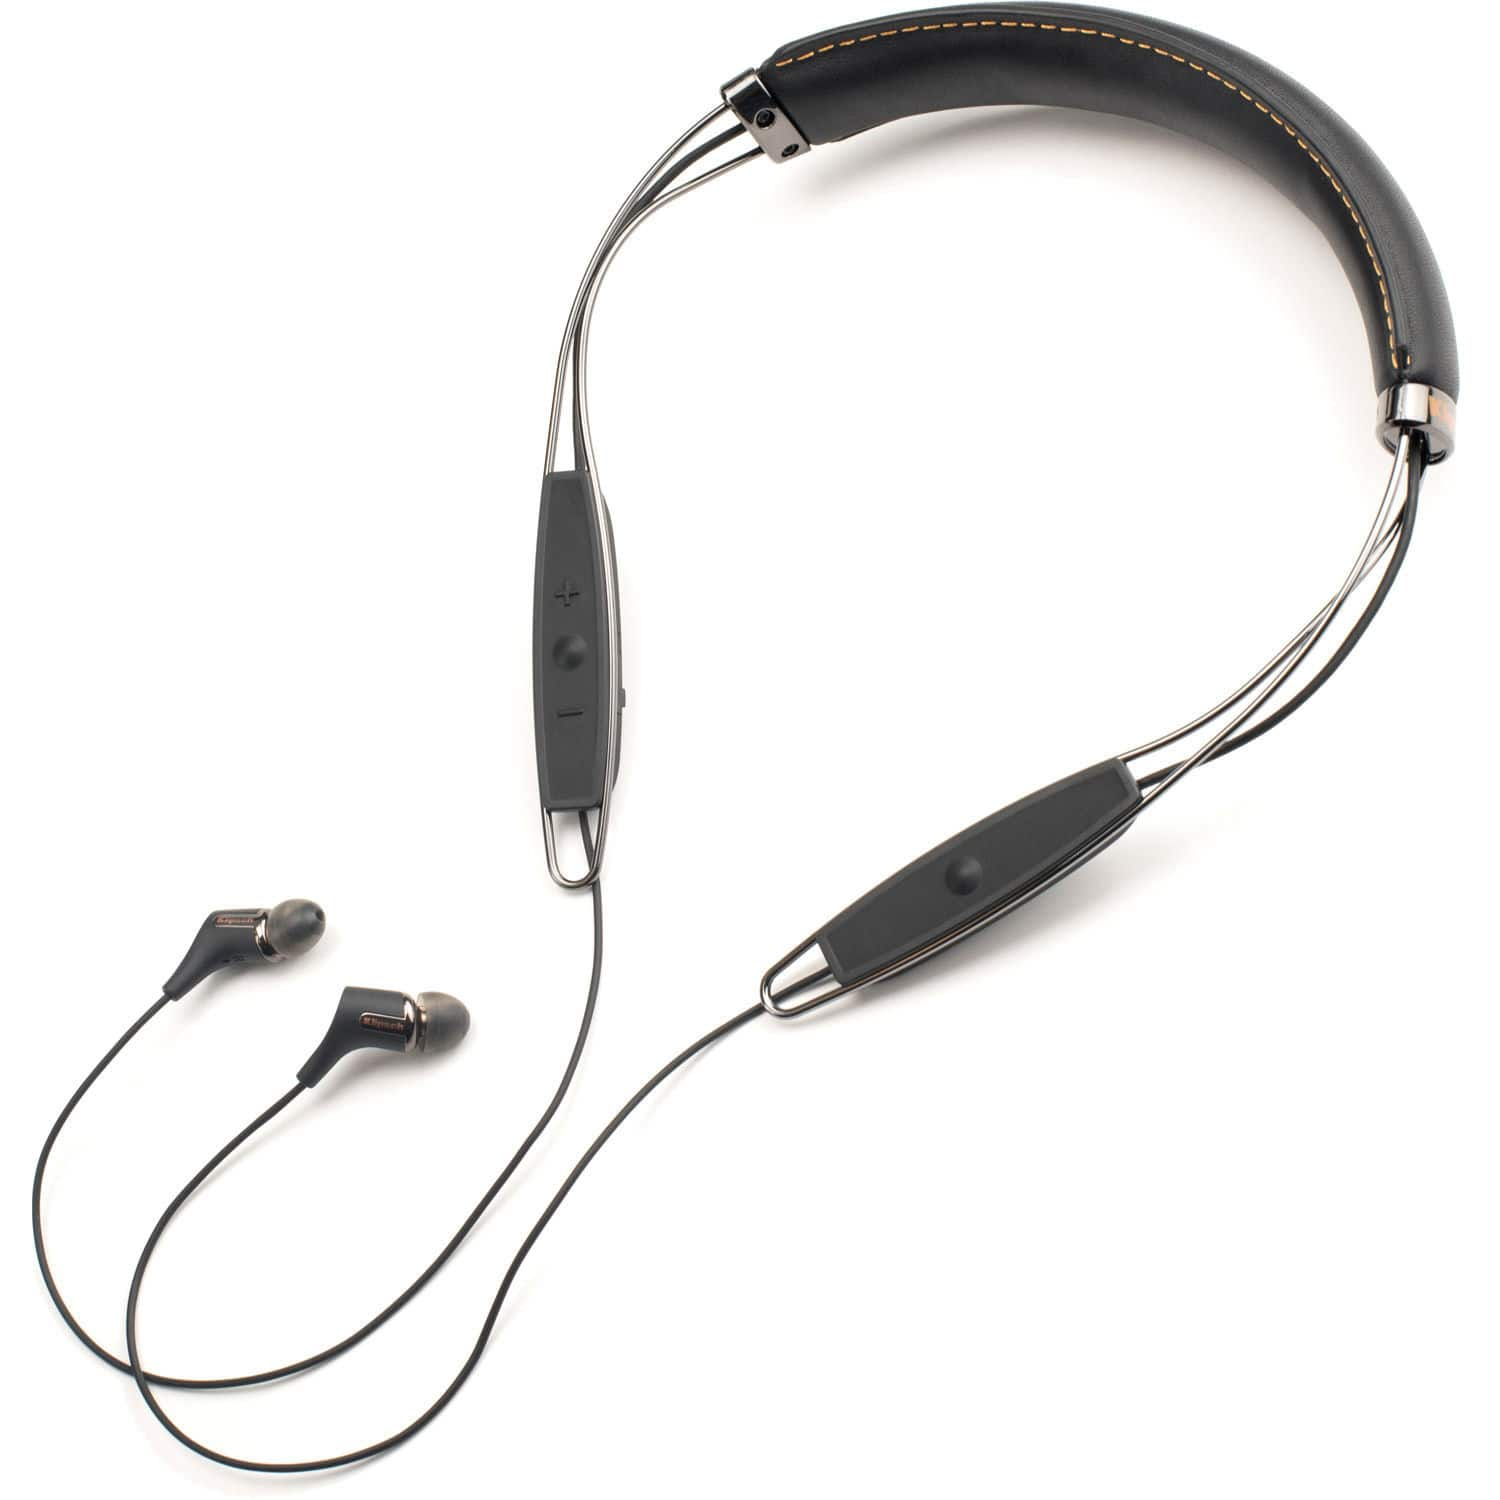 Klipsch R6 Bluetooth Leather Neckband Earphones w/ Mic - $49.99 + Free Shipping